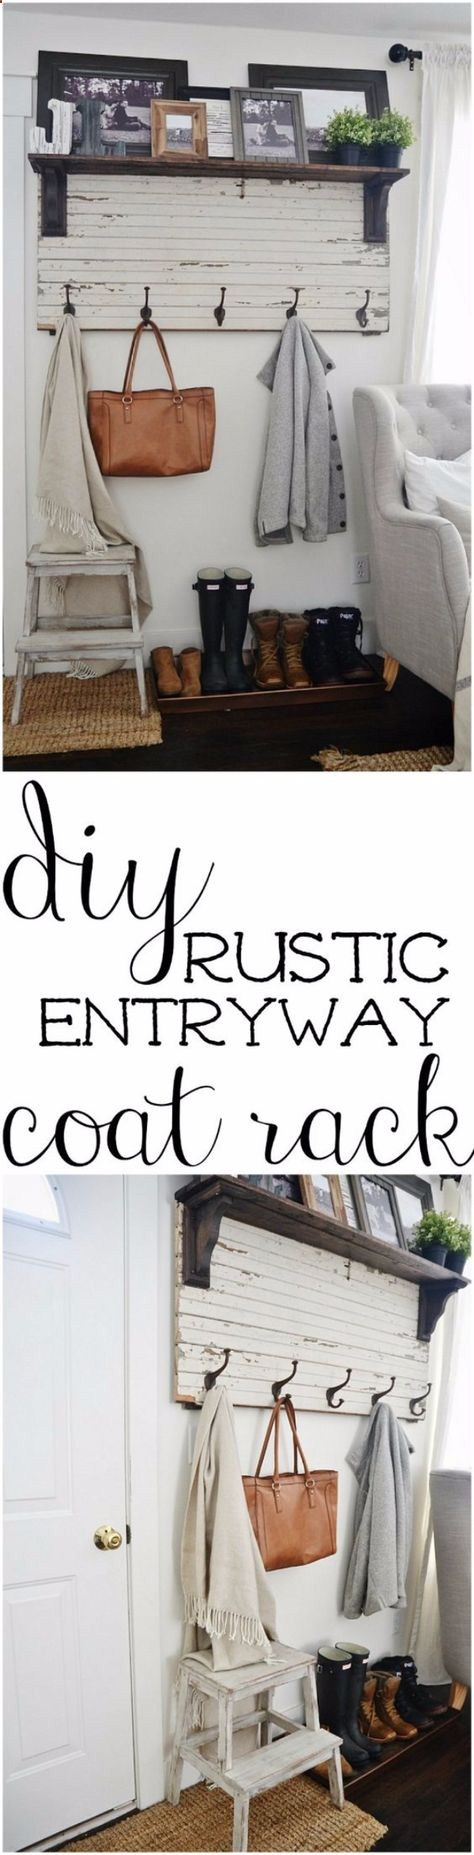 Diy ideas for your entry diy rustic entryway coat rack cool and